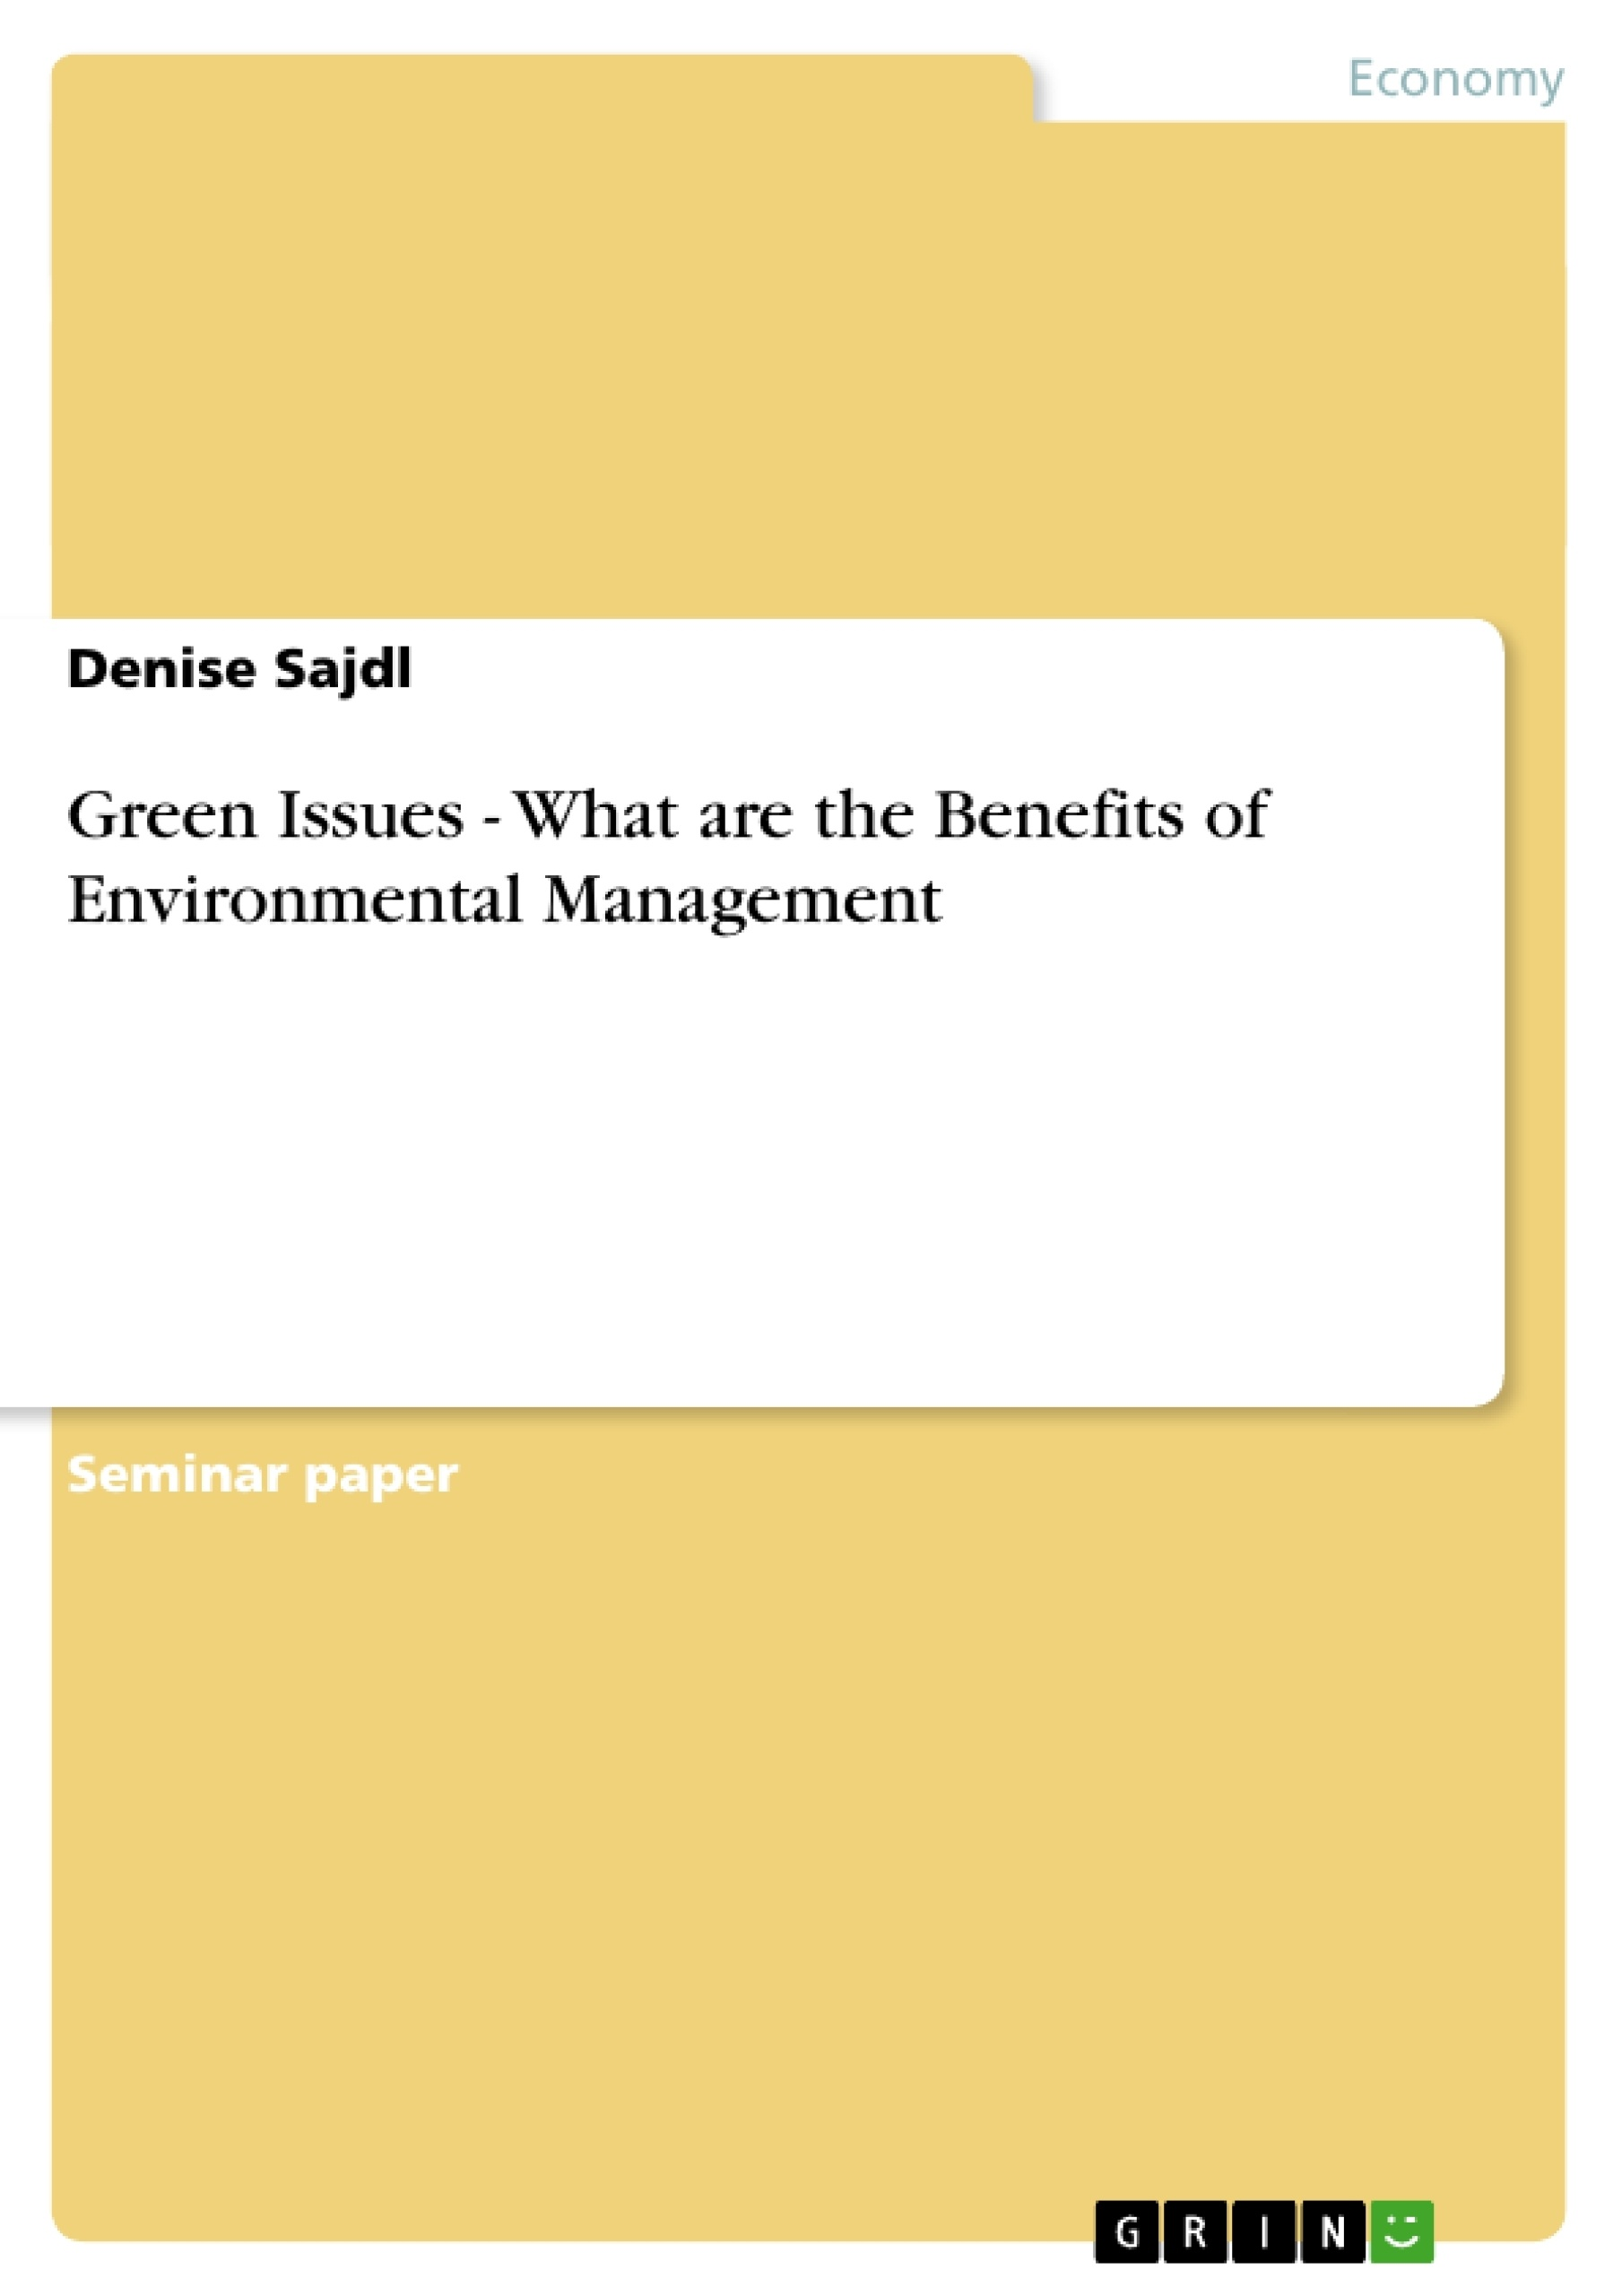 Title: Green Issues - What are the Benefits of Environmental Management